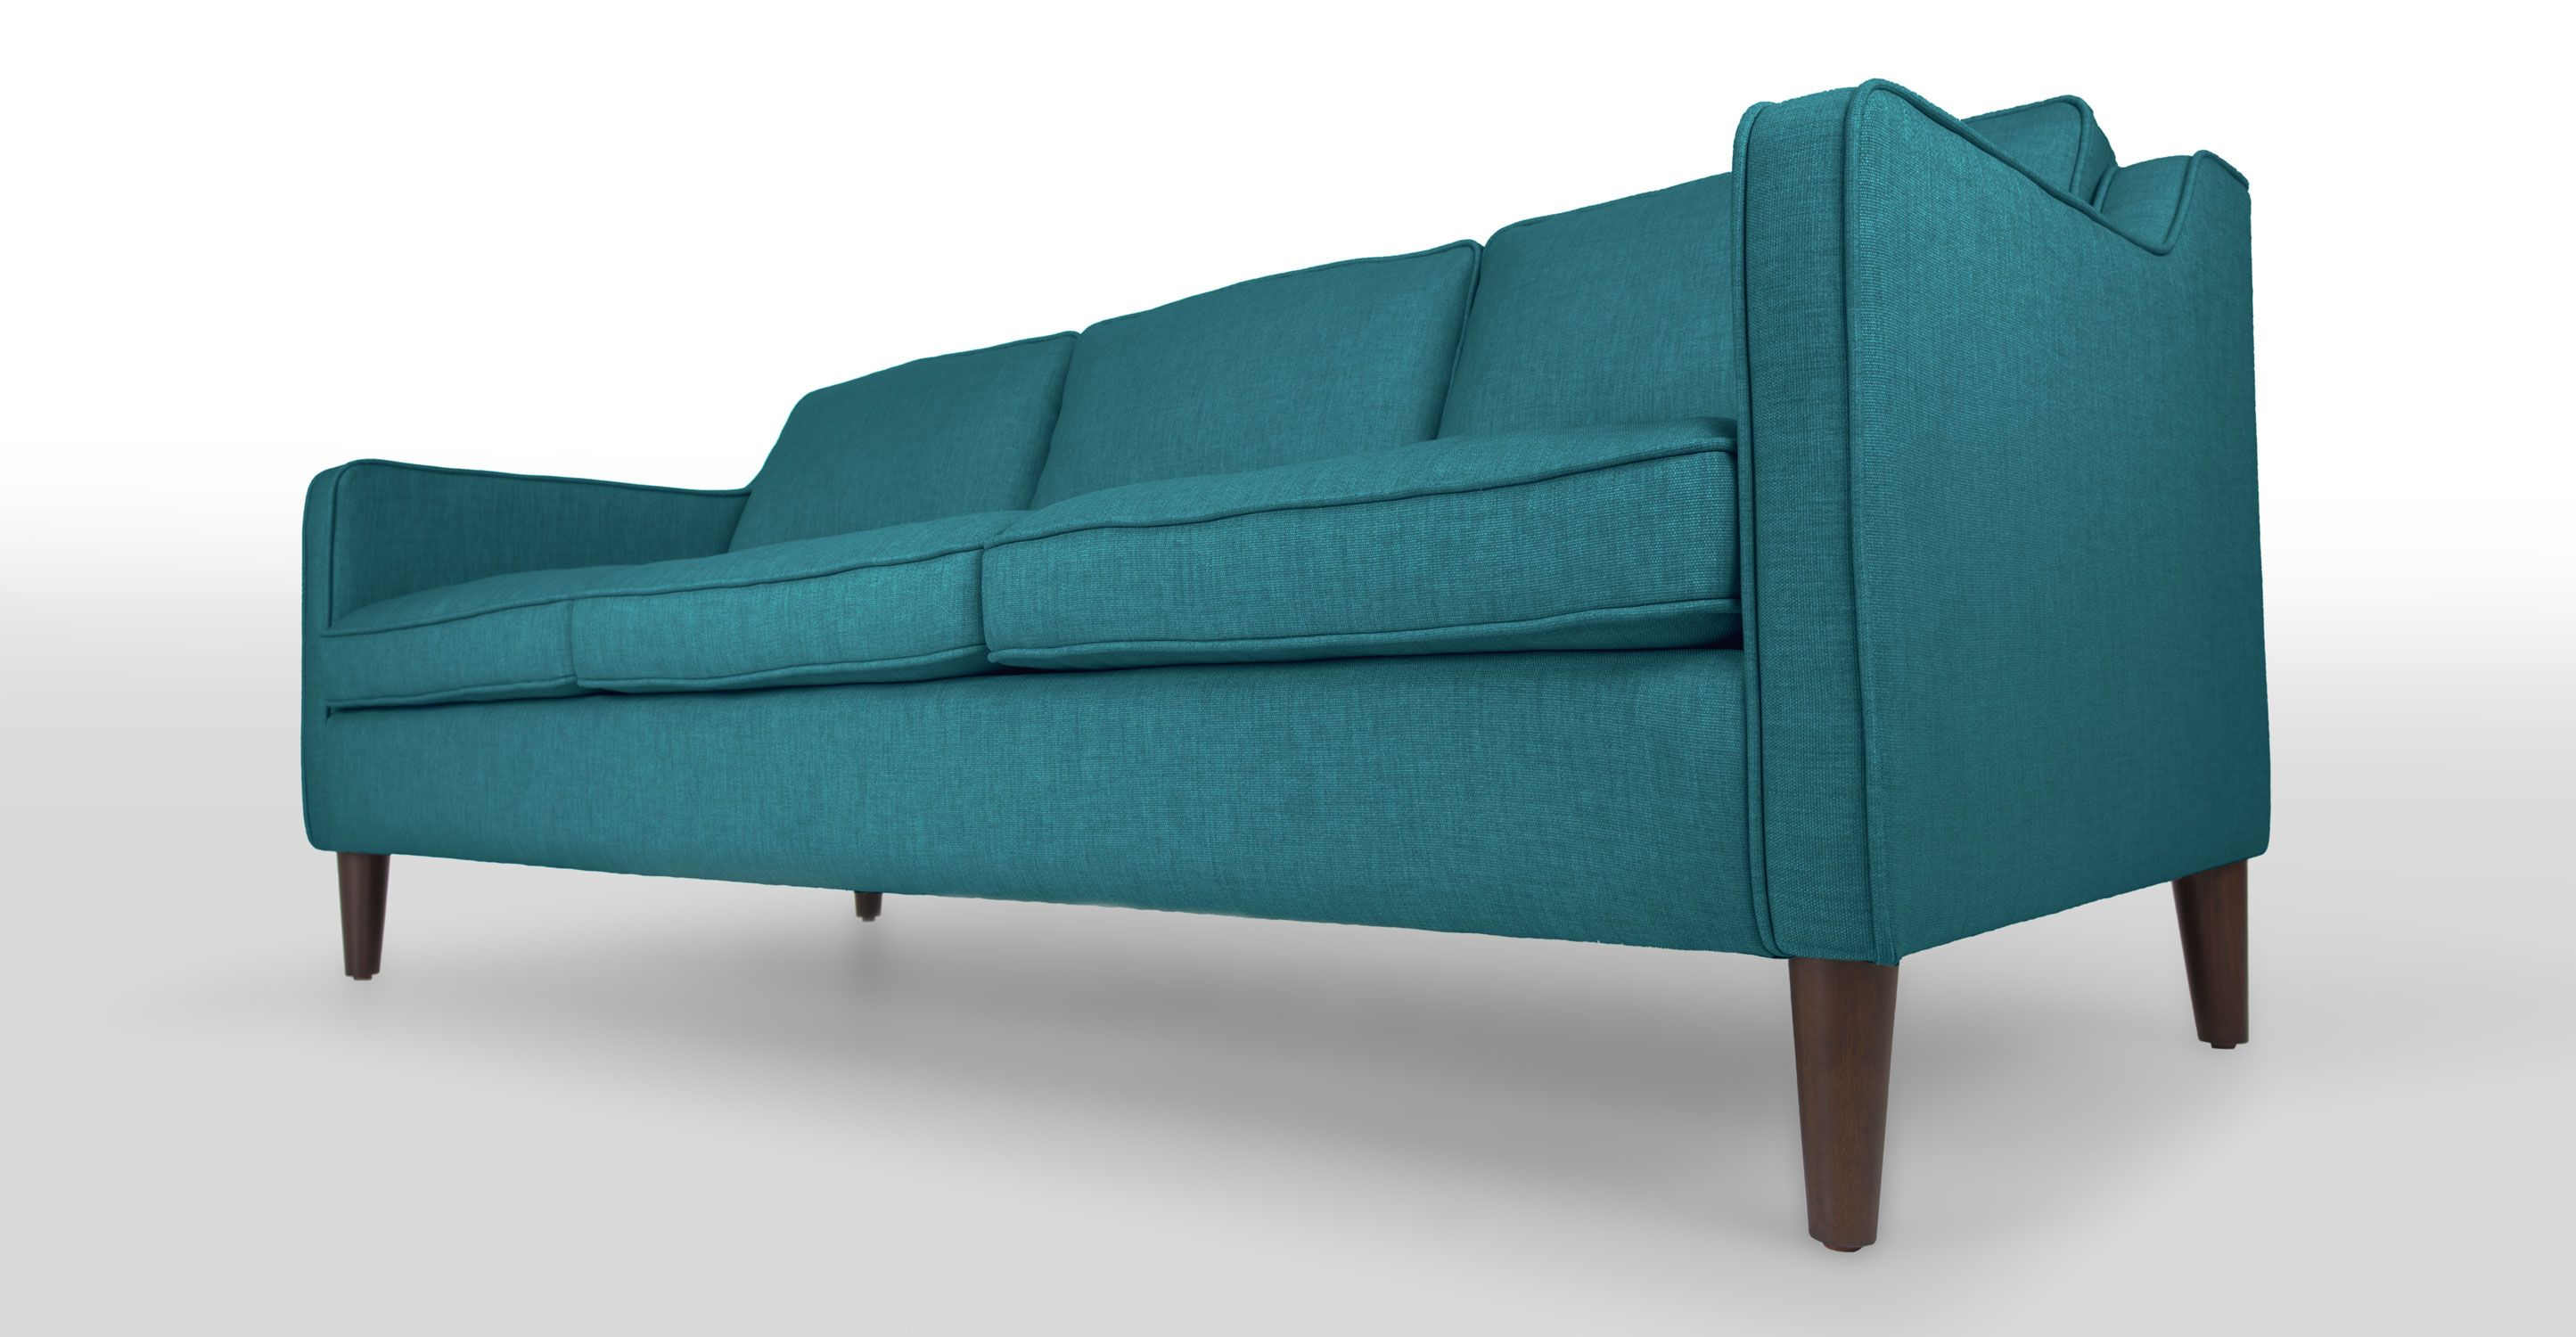 teal mid century modern sofa cherie mid century modern furniture teal sofa scandinavian. Black Bedroom Furniture Sets. Home Design Ideas